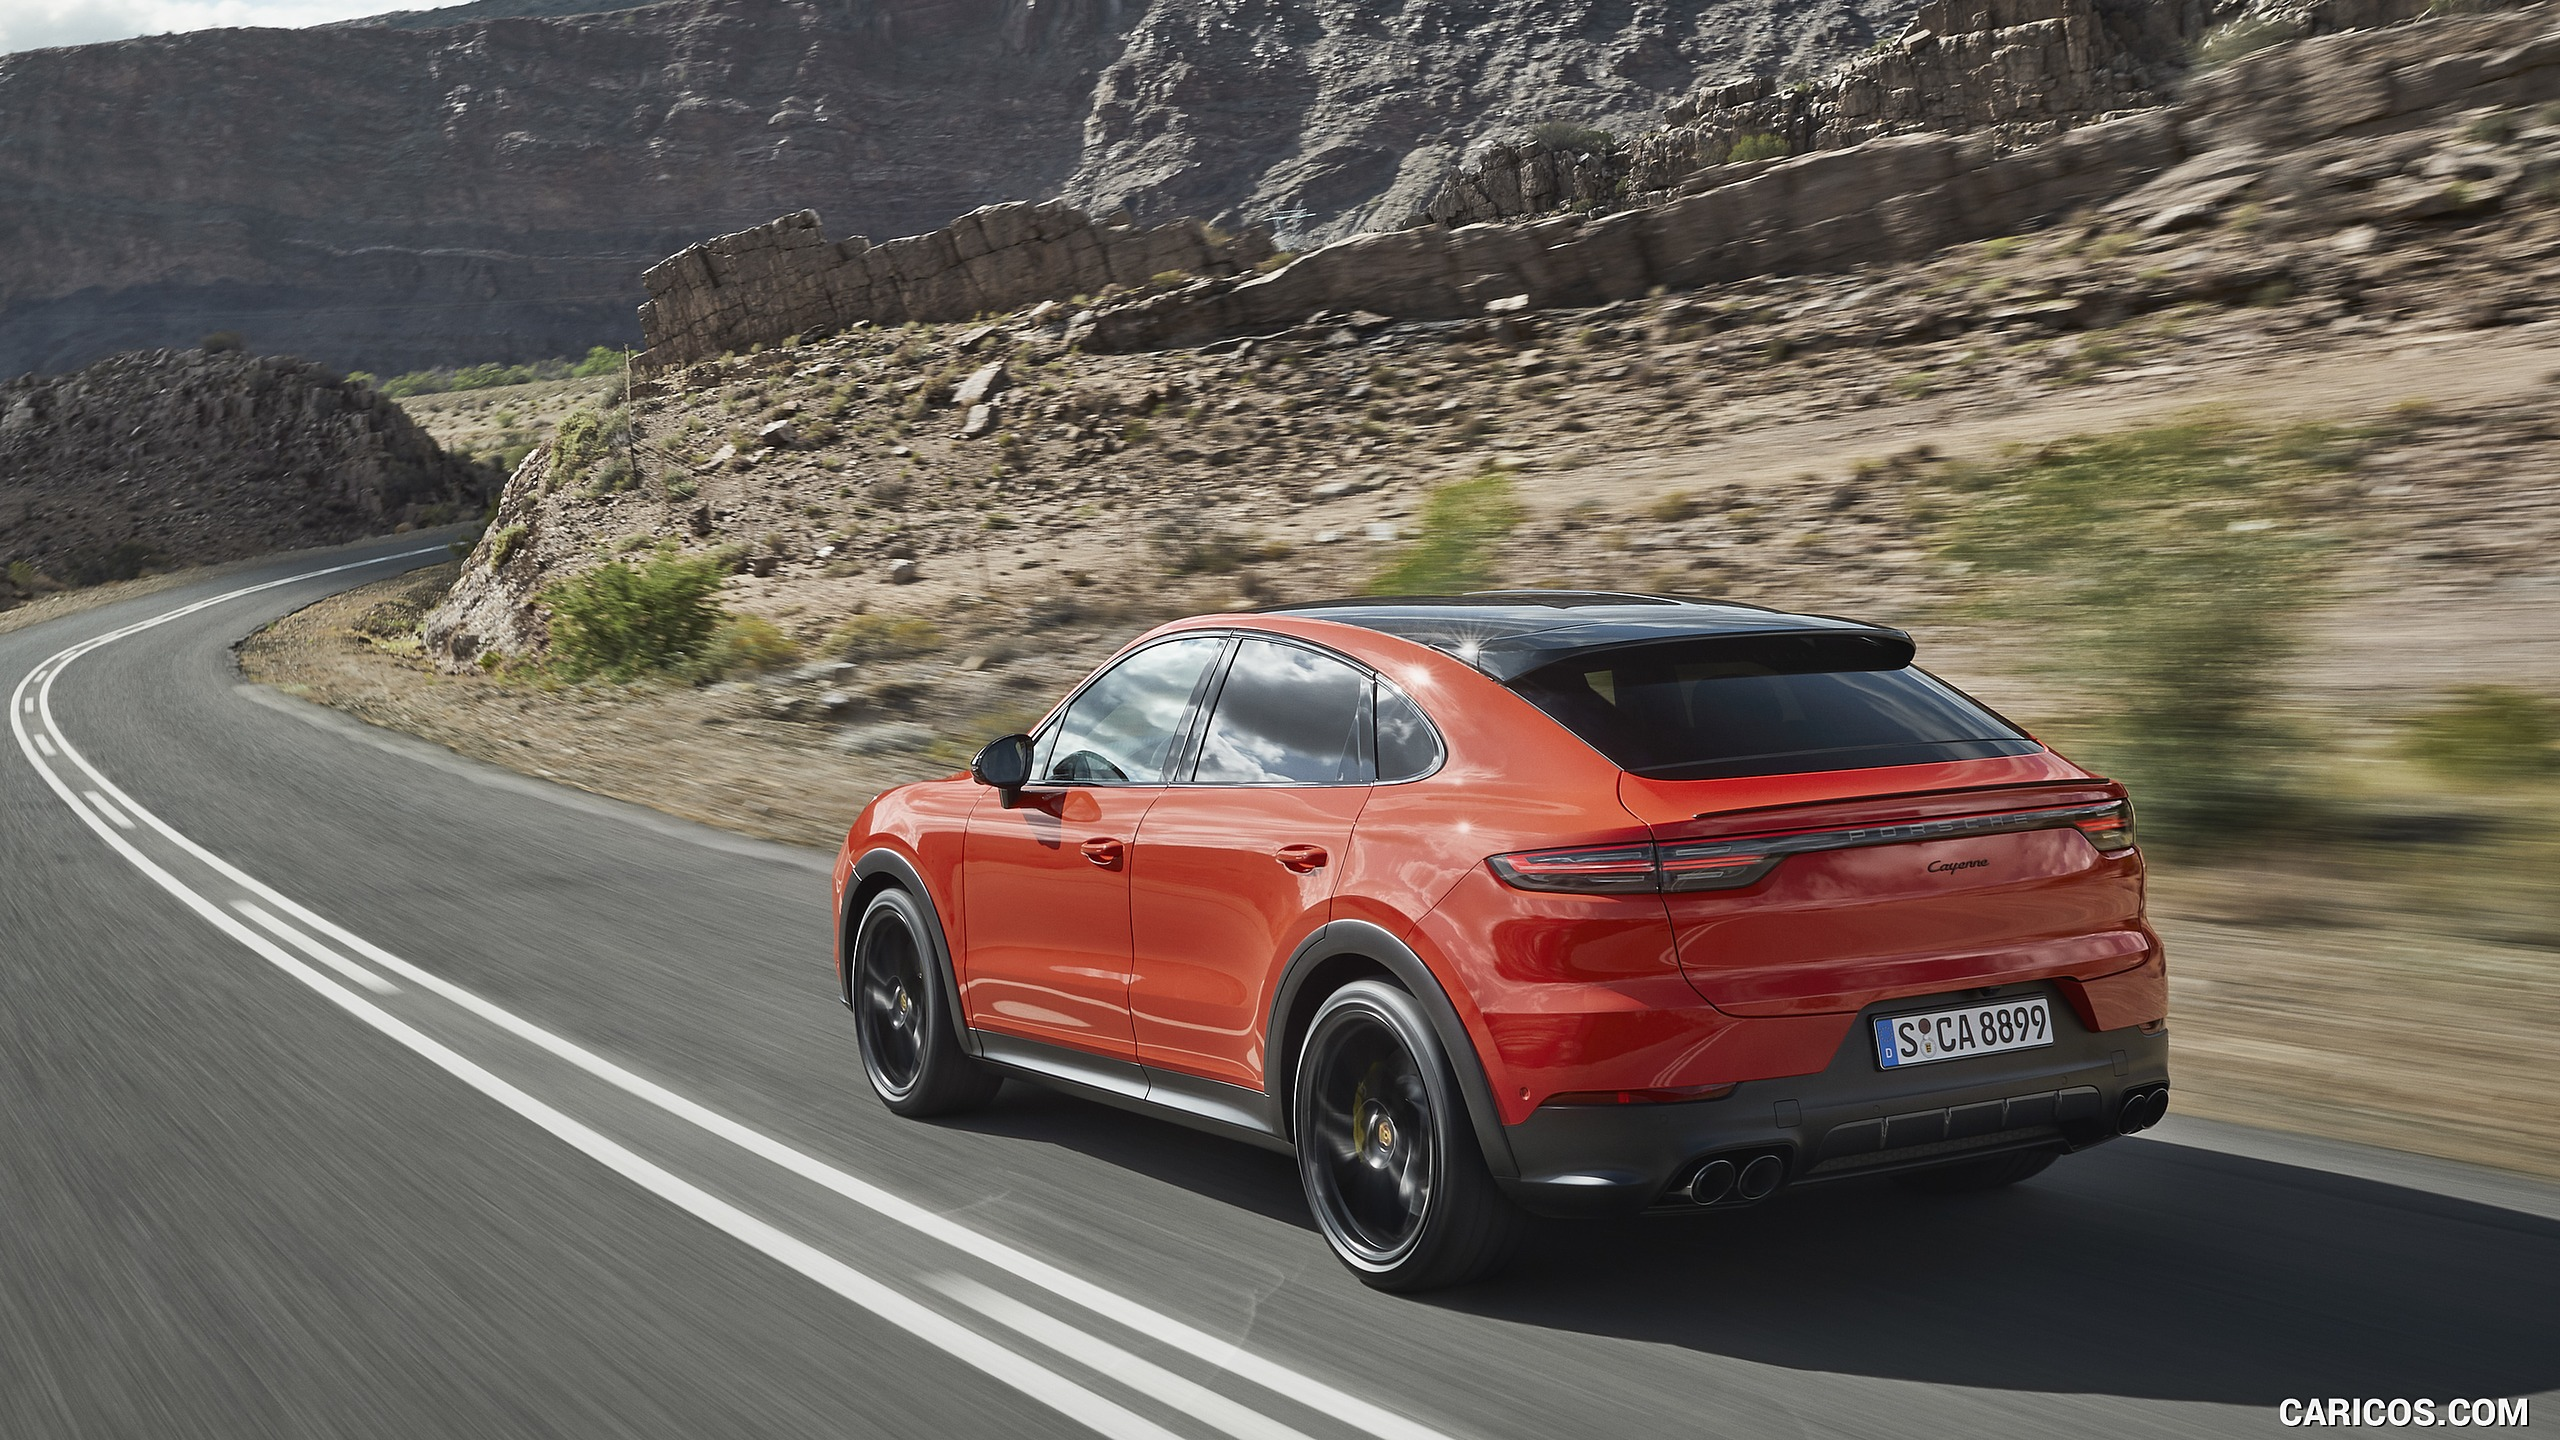 2020 Porsche Cayenne Coupe   Rear Three Quarter HD Wallpaper 3 2560x1440